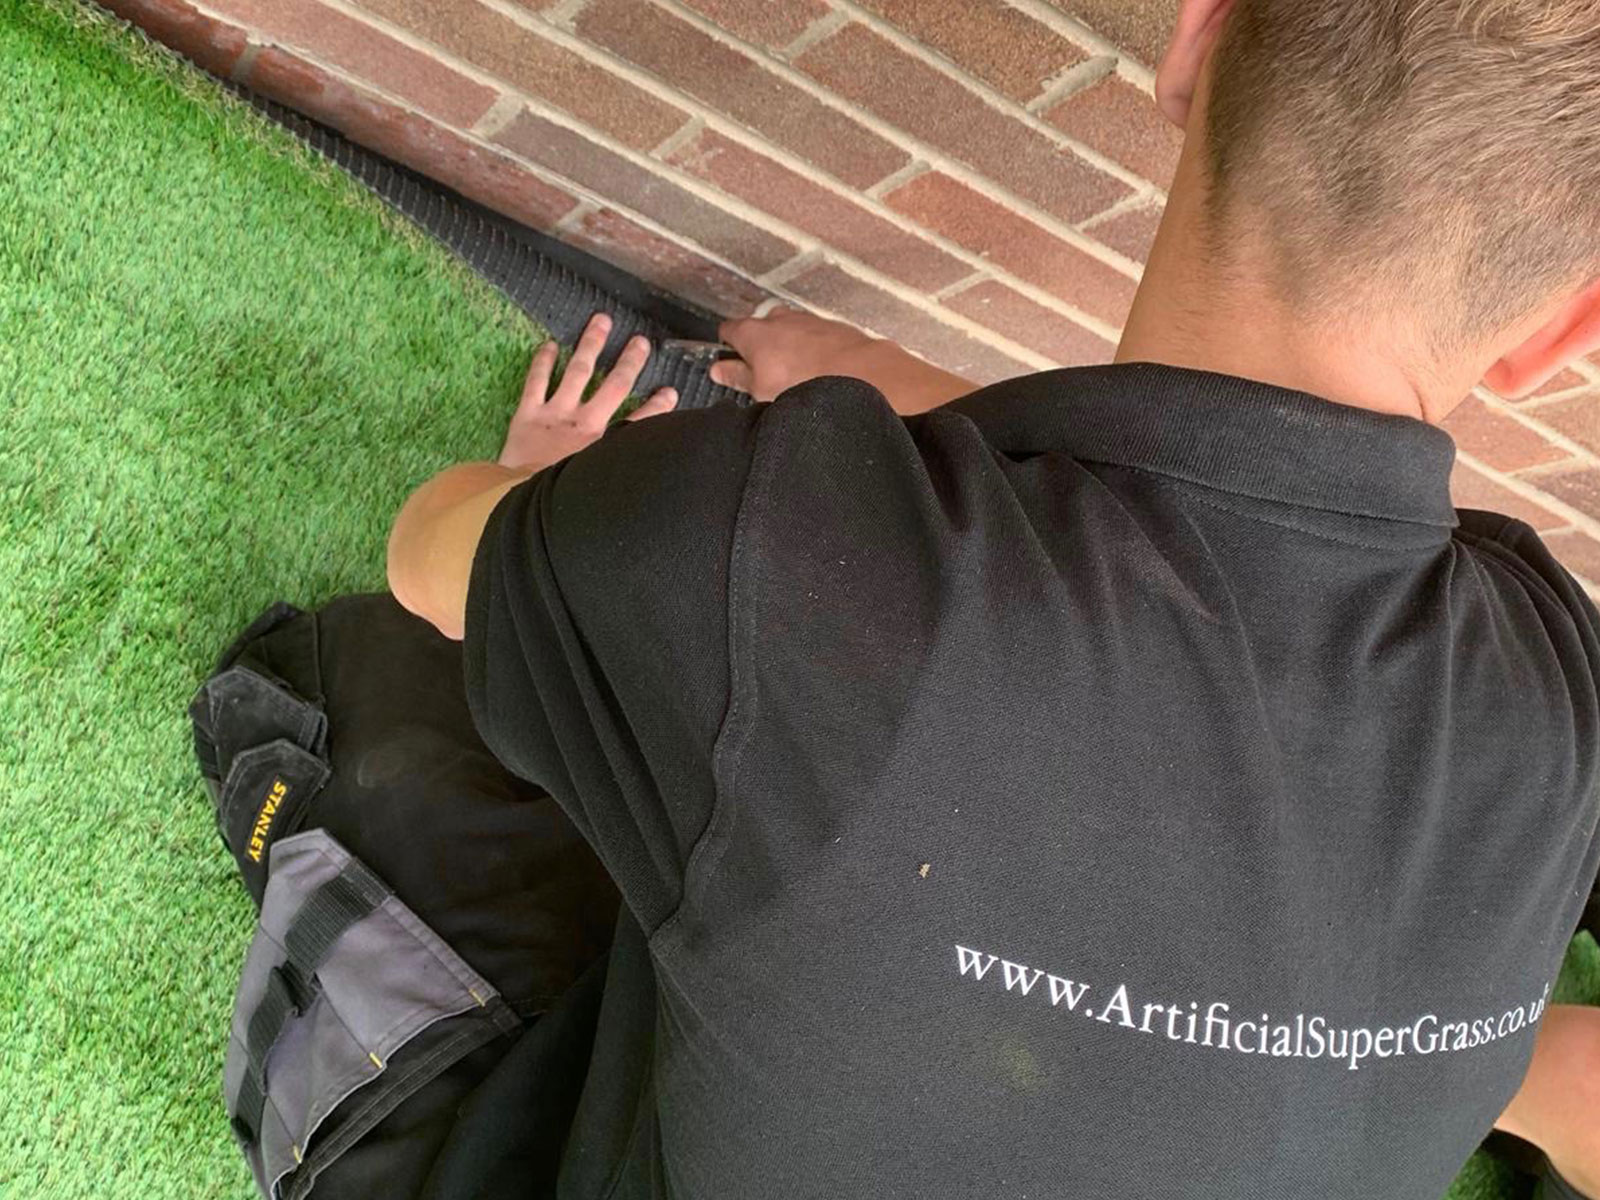 Laying Artificial Grass North Ferriby Artificial Super Grass